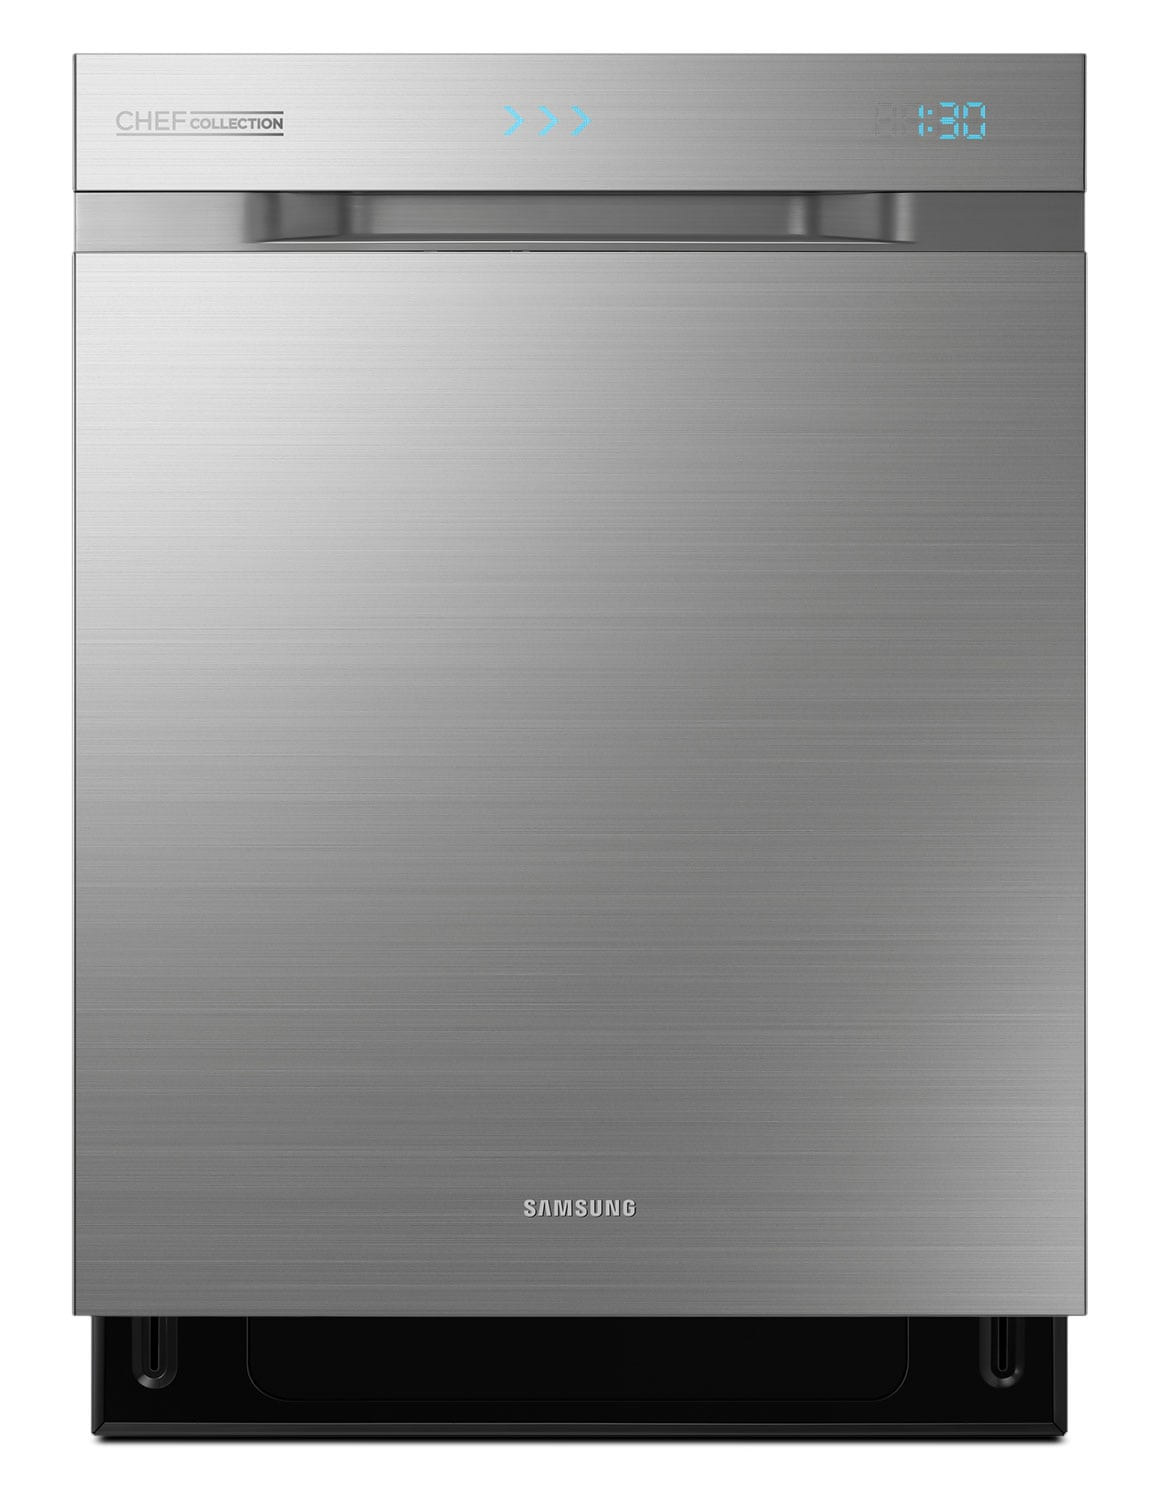 Clean-Up - Samsung Chef Collection Built-in Dishwasher – DW80H9970US/AC